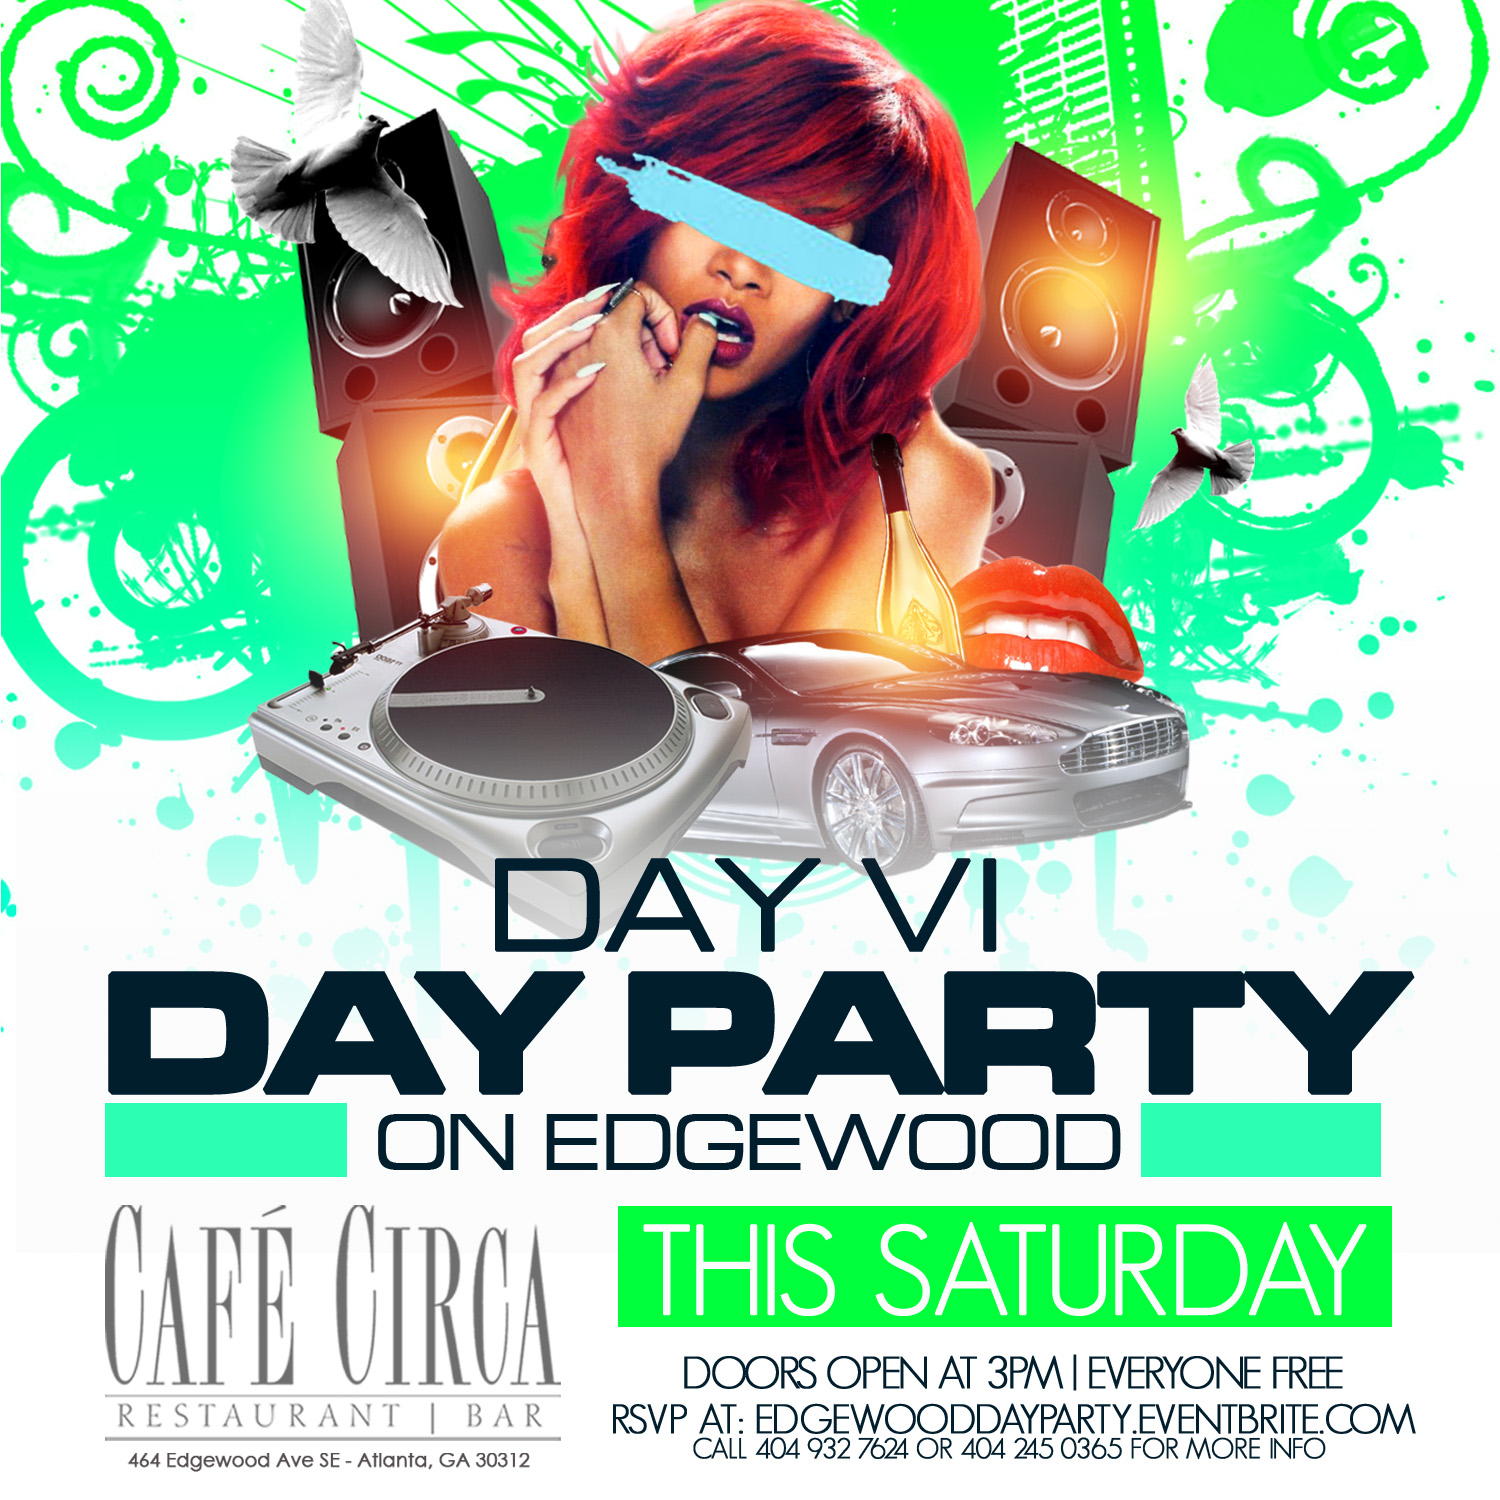 DAY VI DAY PARTY ON EDGEWOOD [FREE] Event